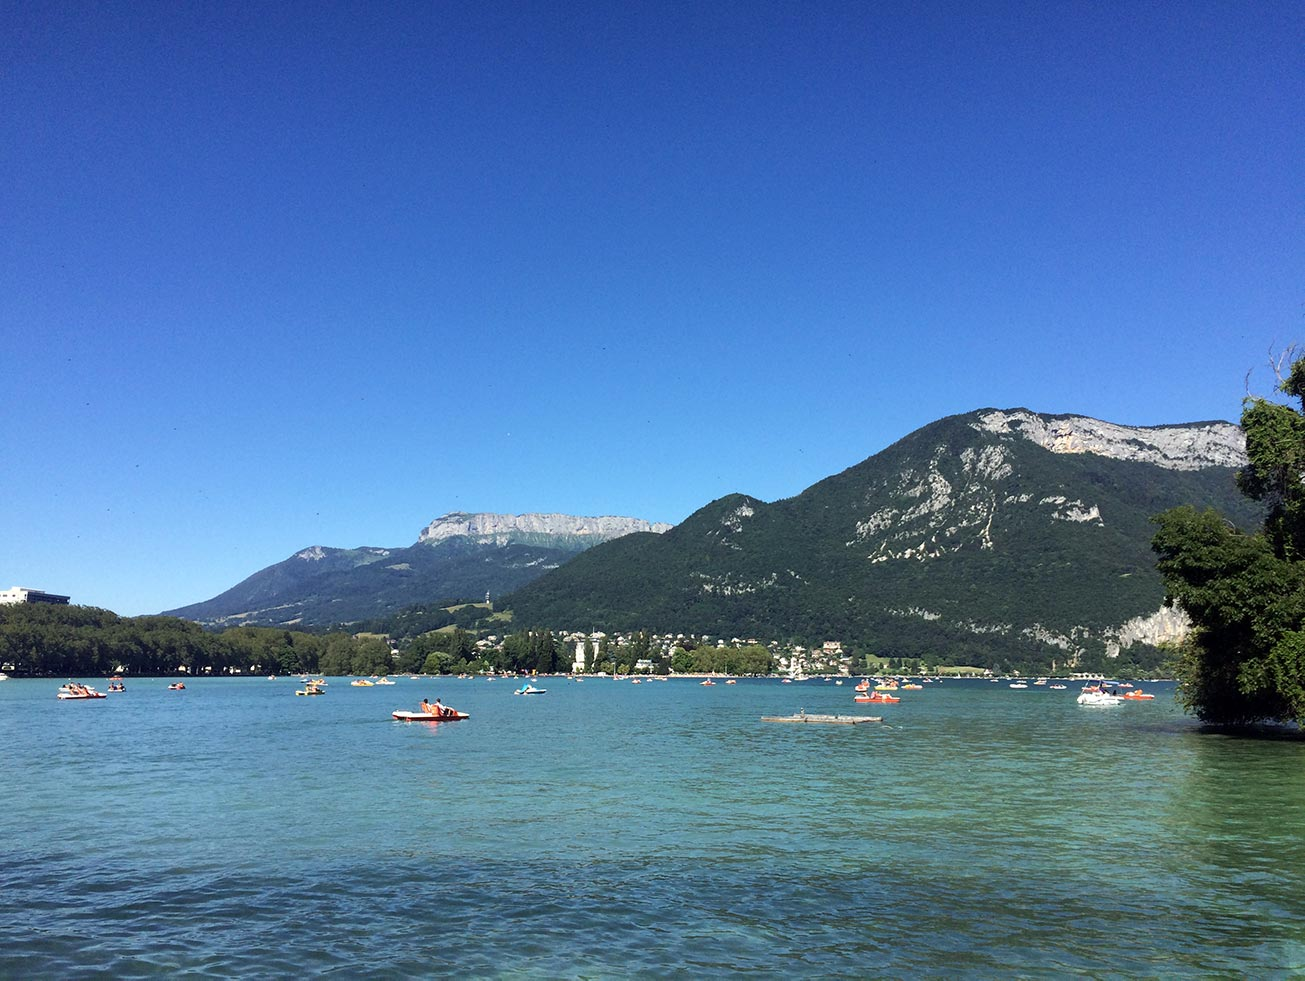 Lake Annecy with a mountain in the distance. There are boats out on the water.